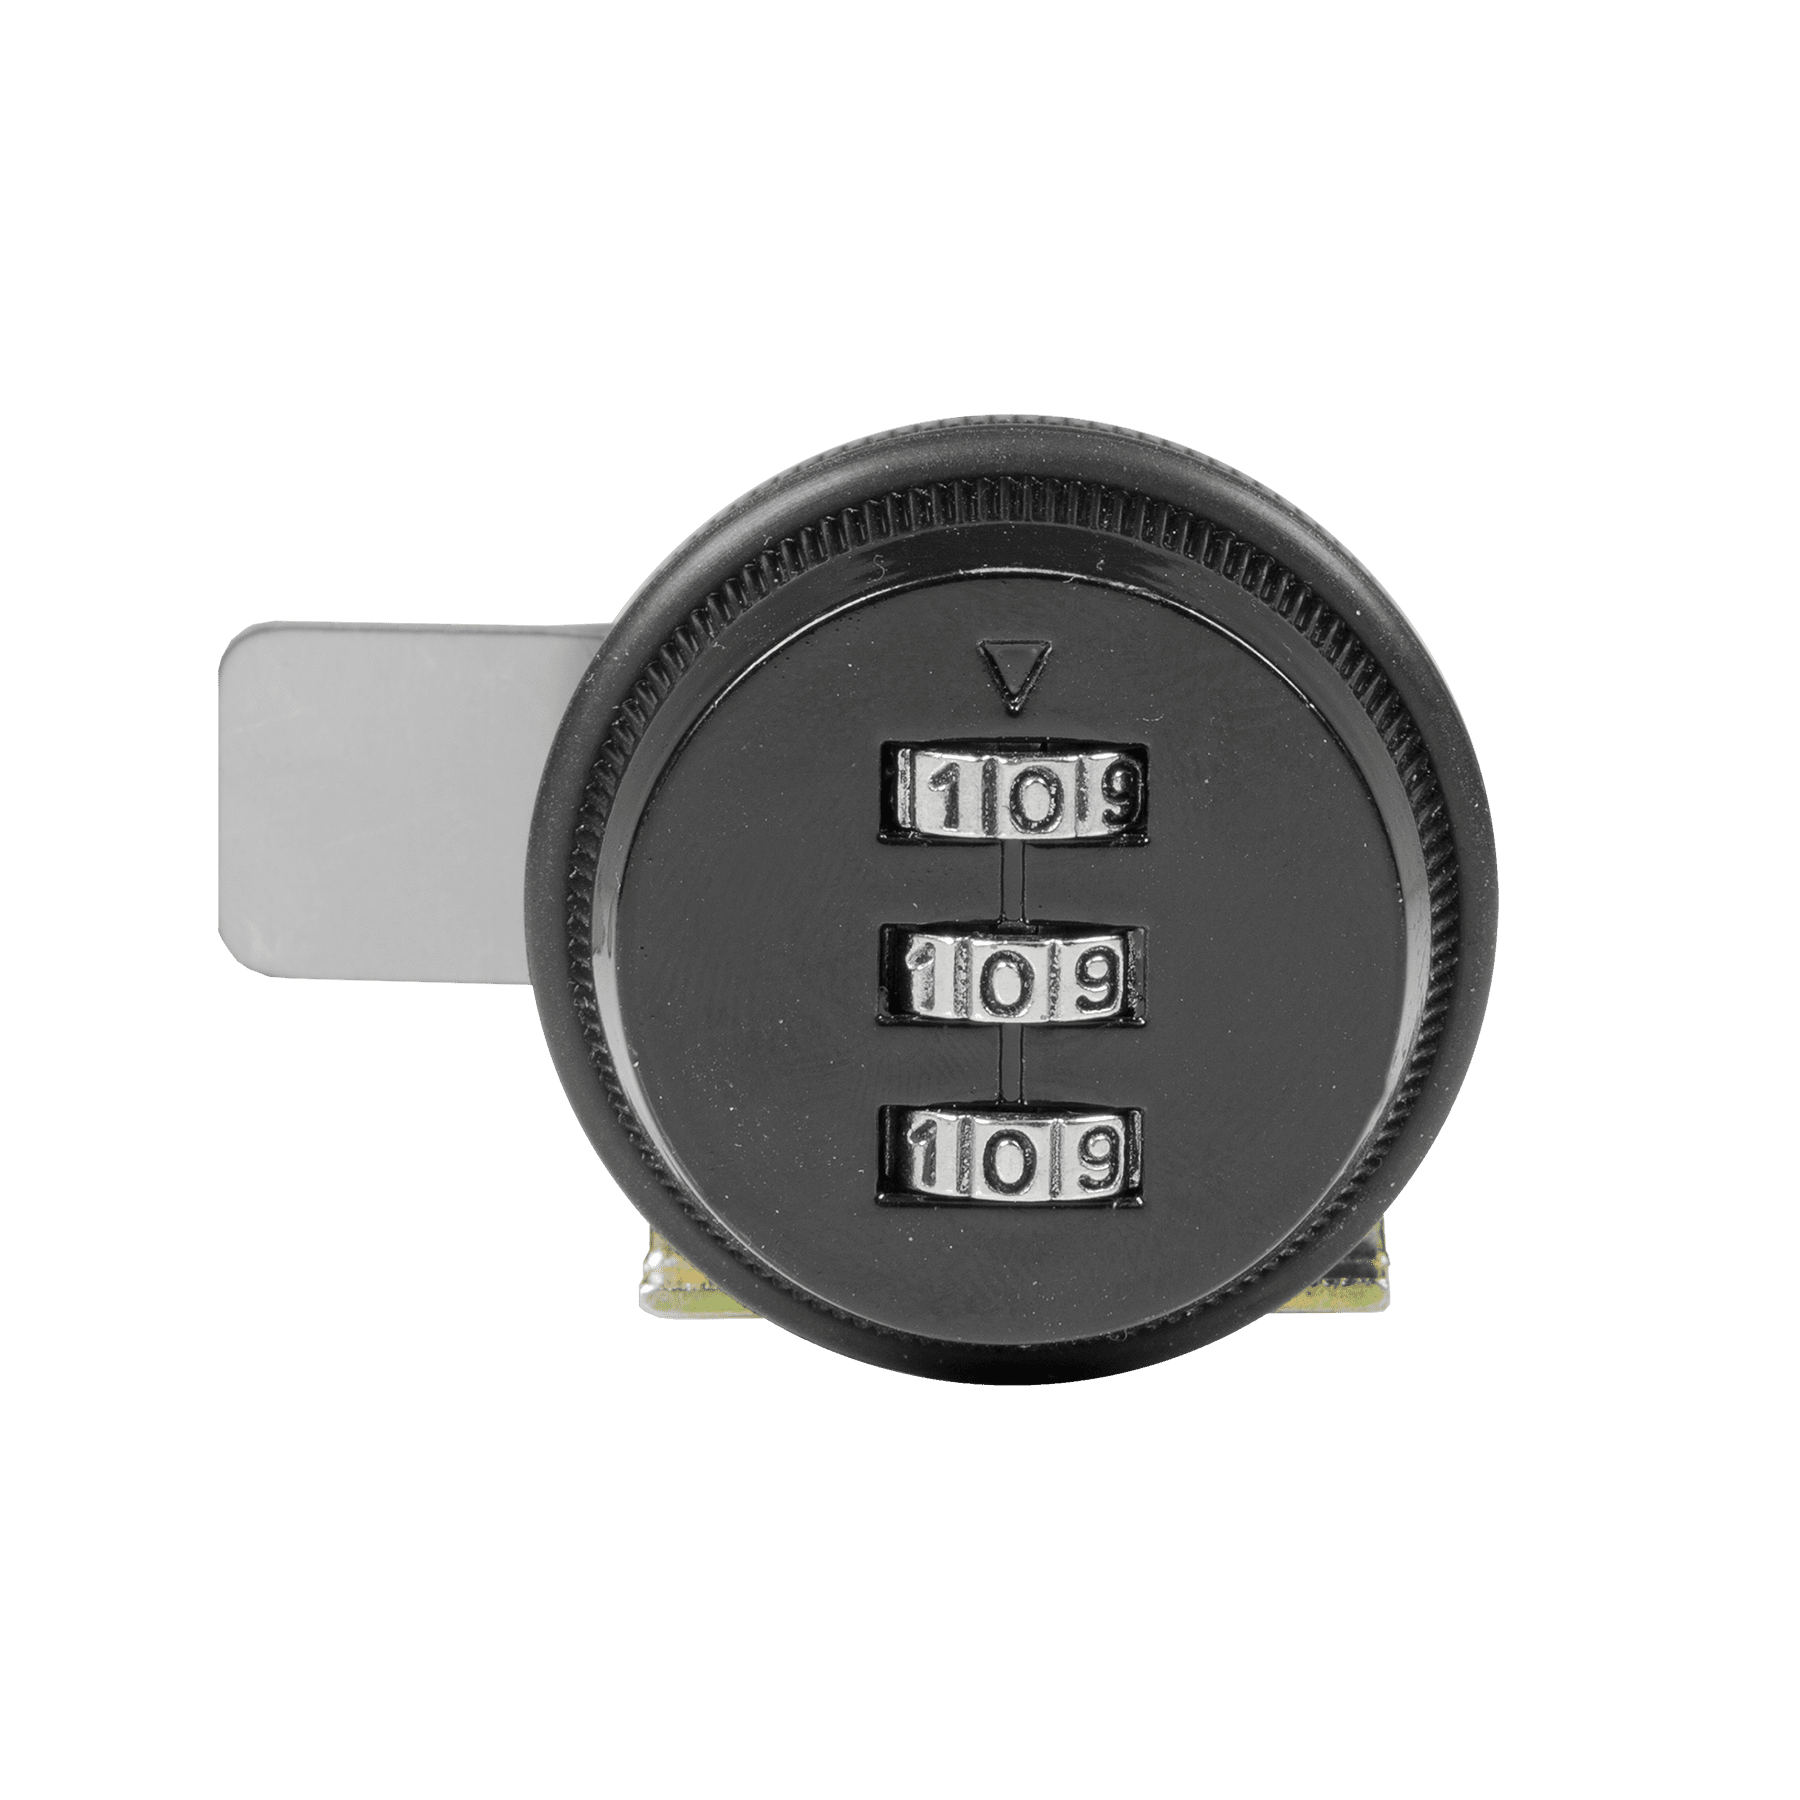 WPR10CL - Rotary code lock for WPR/HPR series cabinets - 3 digits